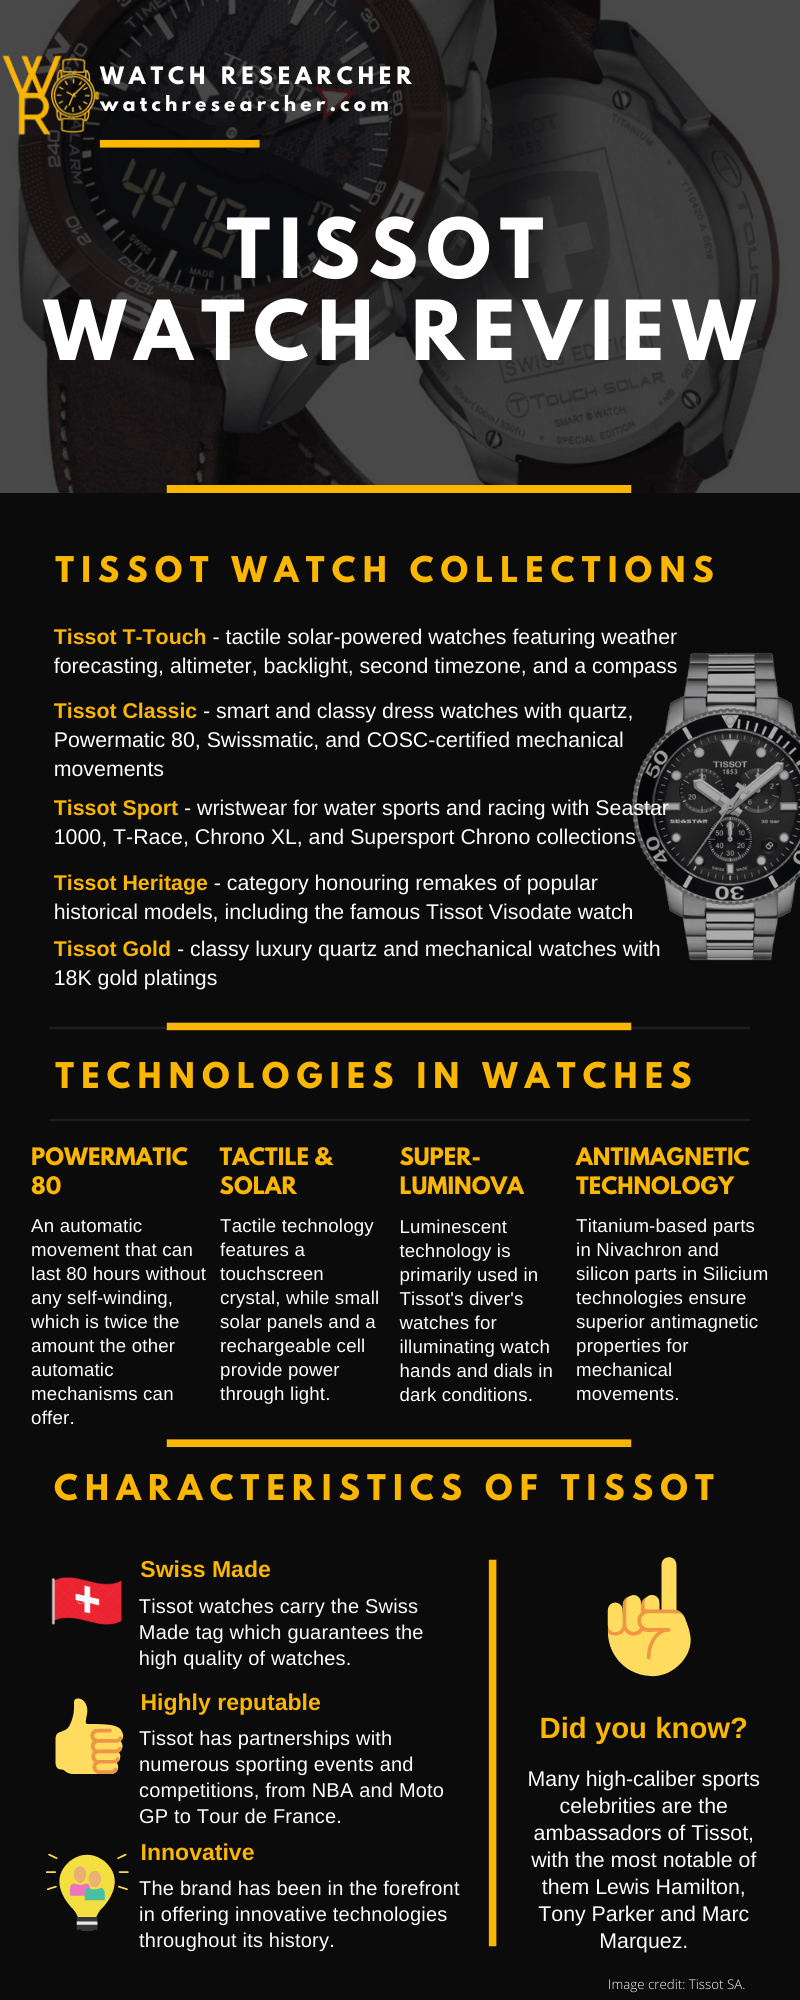 Tissot watch review infographic